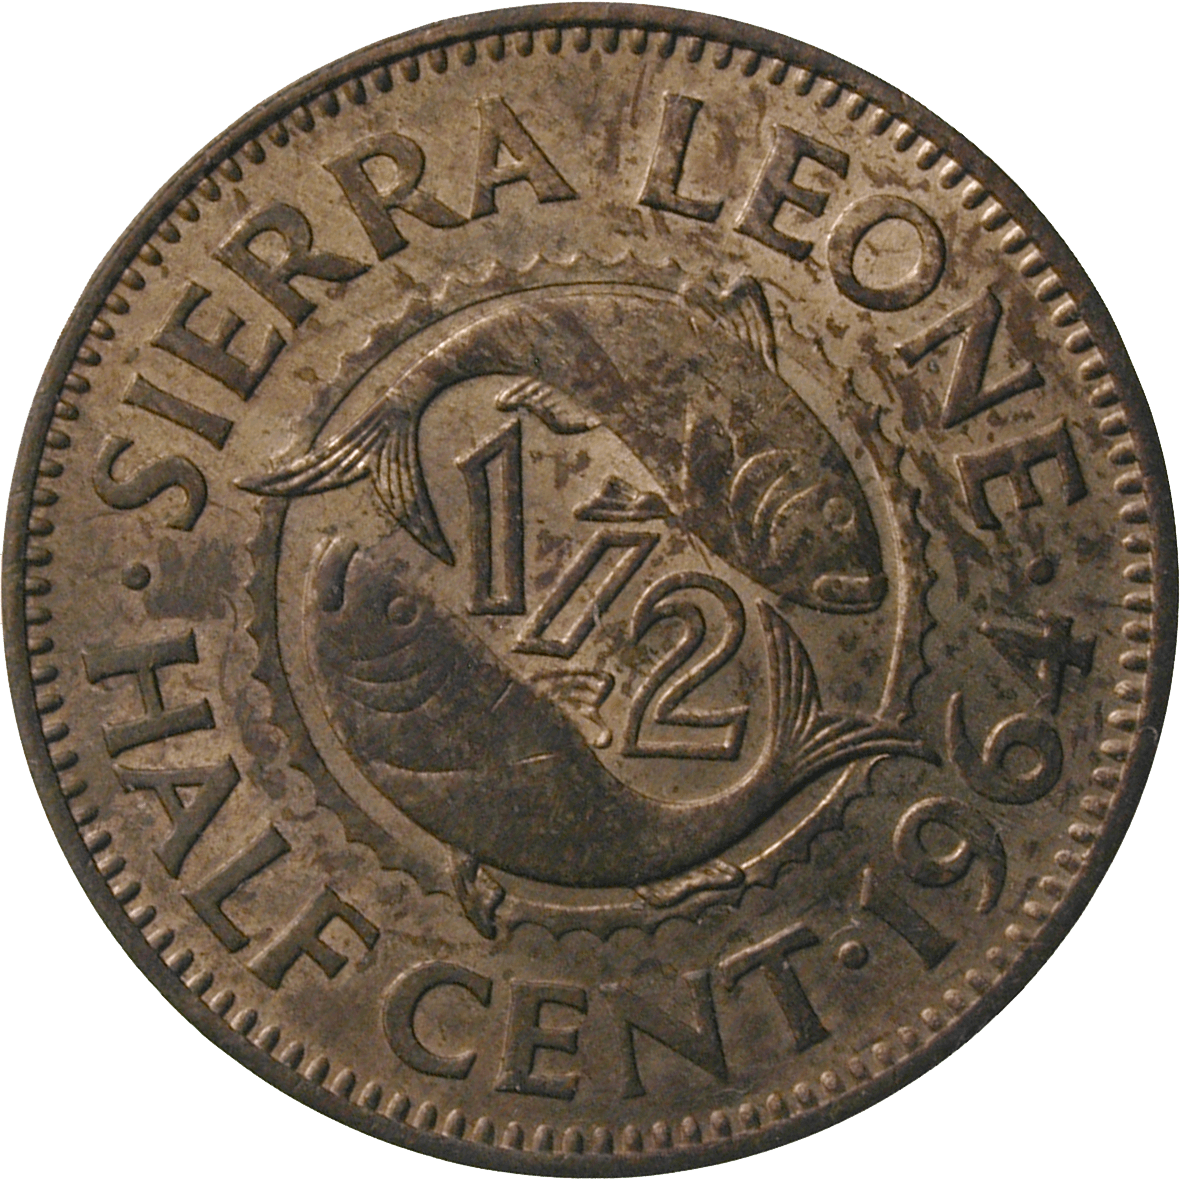 Republic of Sierra Leone, Half Cent 1964 (reverse)